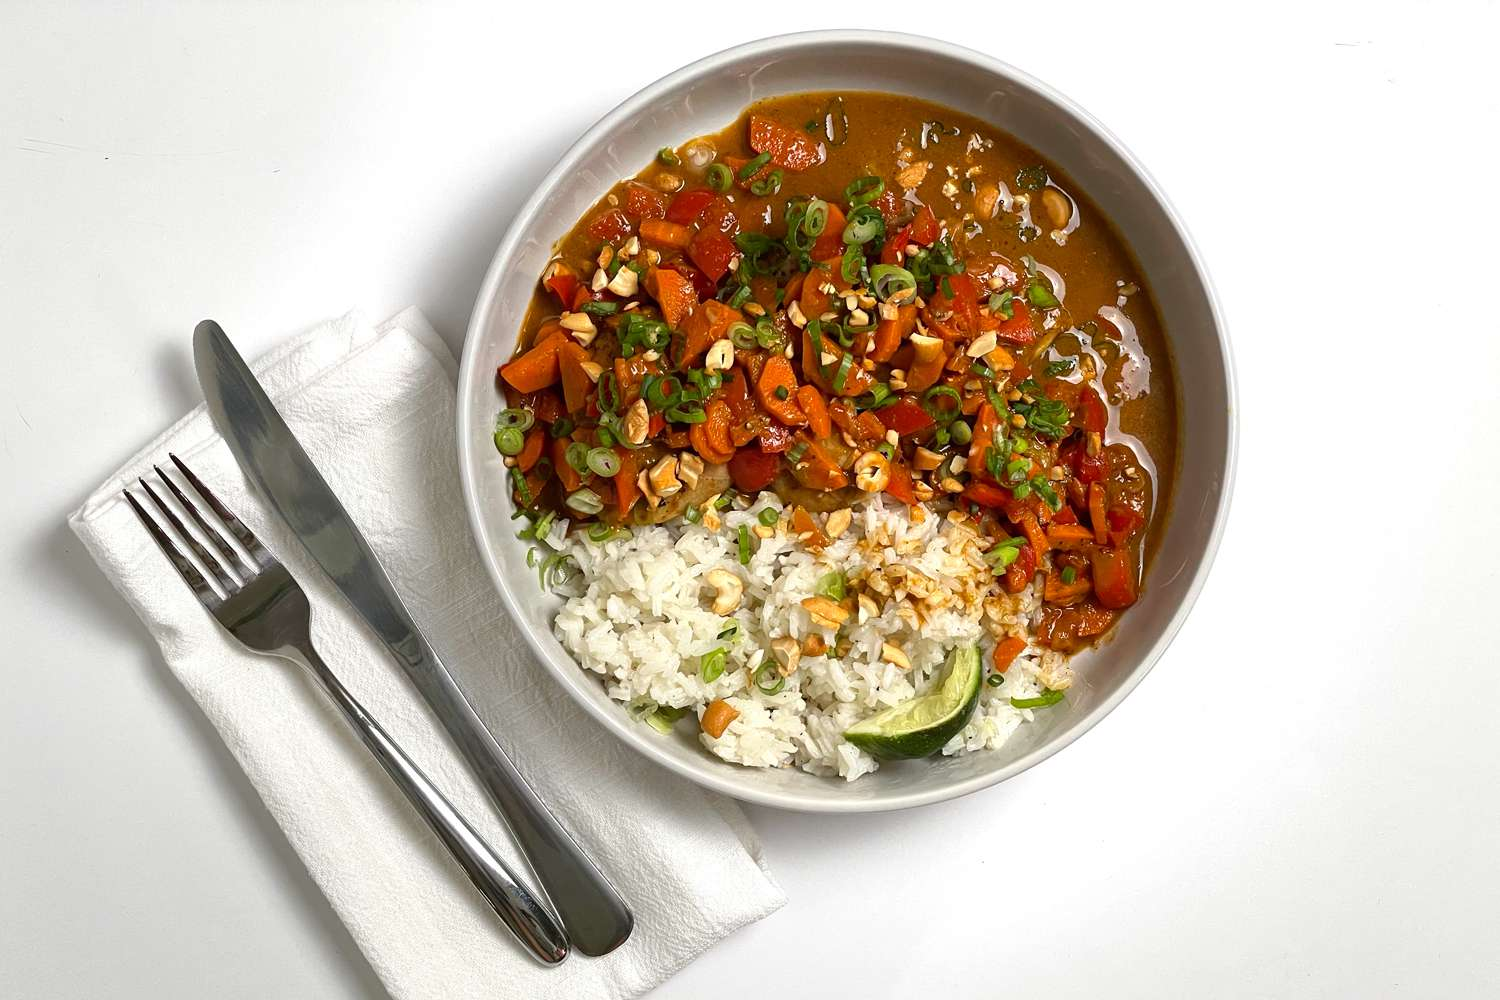 Blue Apron rice and vegetables